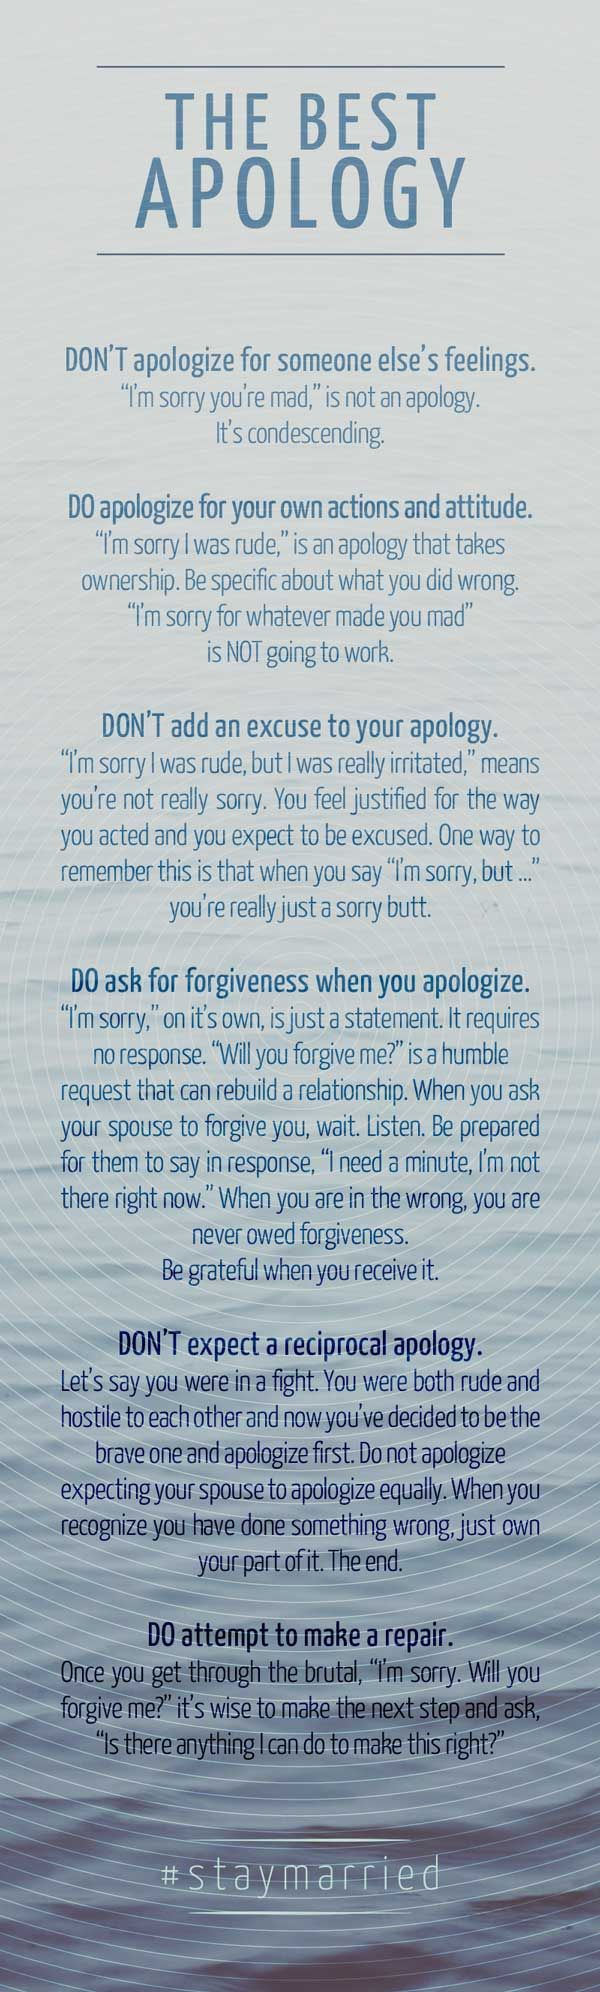 "THE BEST APOLOGY DON'T apologize for someone else's feelings. ""I'm sorry you're mad,"" is not an apology. It's condescending. DO apologize for your own actions and attitude. ""I'm sorry I was rude,"" is an apology that tapes ownership. Be specific about what you did wrong. ""I'm sorry for whatever made you mad"" is NOT going to work. DON'T add an excuse to your apology. ""I'm sorry I was rude, but I was really irritated,"" means you're not really sorry. You feel justified for the way you acted and you expect to be excused. One way to remember this is that when you say ""I'm sorry, but …"" you're really just a sorry butt. DO ask for forgiveness when you apologize. ""I'm sorry,"" on it's own, is just a statement. It requires no response. ""Will you forgive me?"" is a humble request that can rebuild a relationship. When you ask your spouse to forgive you, wait. Listen. Be prepared for them to say in response, ""I need a minute, I'm not there right now."" When you are in the wrong, you are never owed forgiveness. Be grateful when you receive it. DON'T expect a reciprocal apology. Let's say you were in a fight. You were both rude and hostile to each other and now you've decided to be the brave one and apologize first. Do not apologize expecting your spouse to apologize equally. When you recognize you have done something wrong, just own your part of it. The end. DO attempt to make a repair. Once you get through the brutal, ""I'm sorry. Will you forgive me?"" it's wise to make the next step and ash, ""Is there anything I can do to make this right?"""